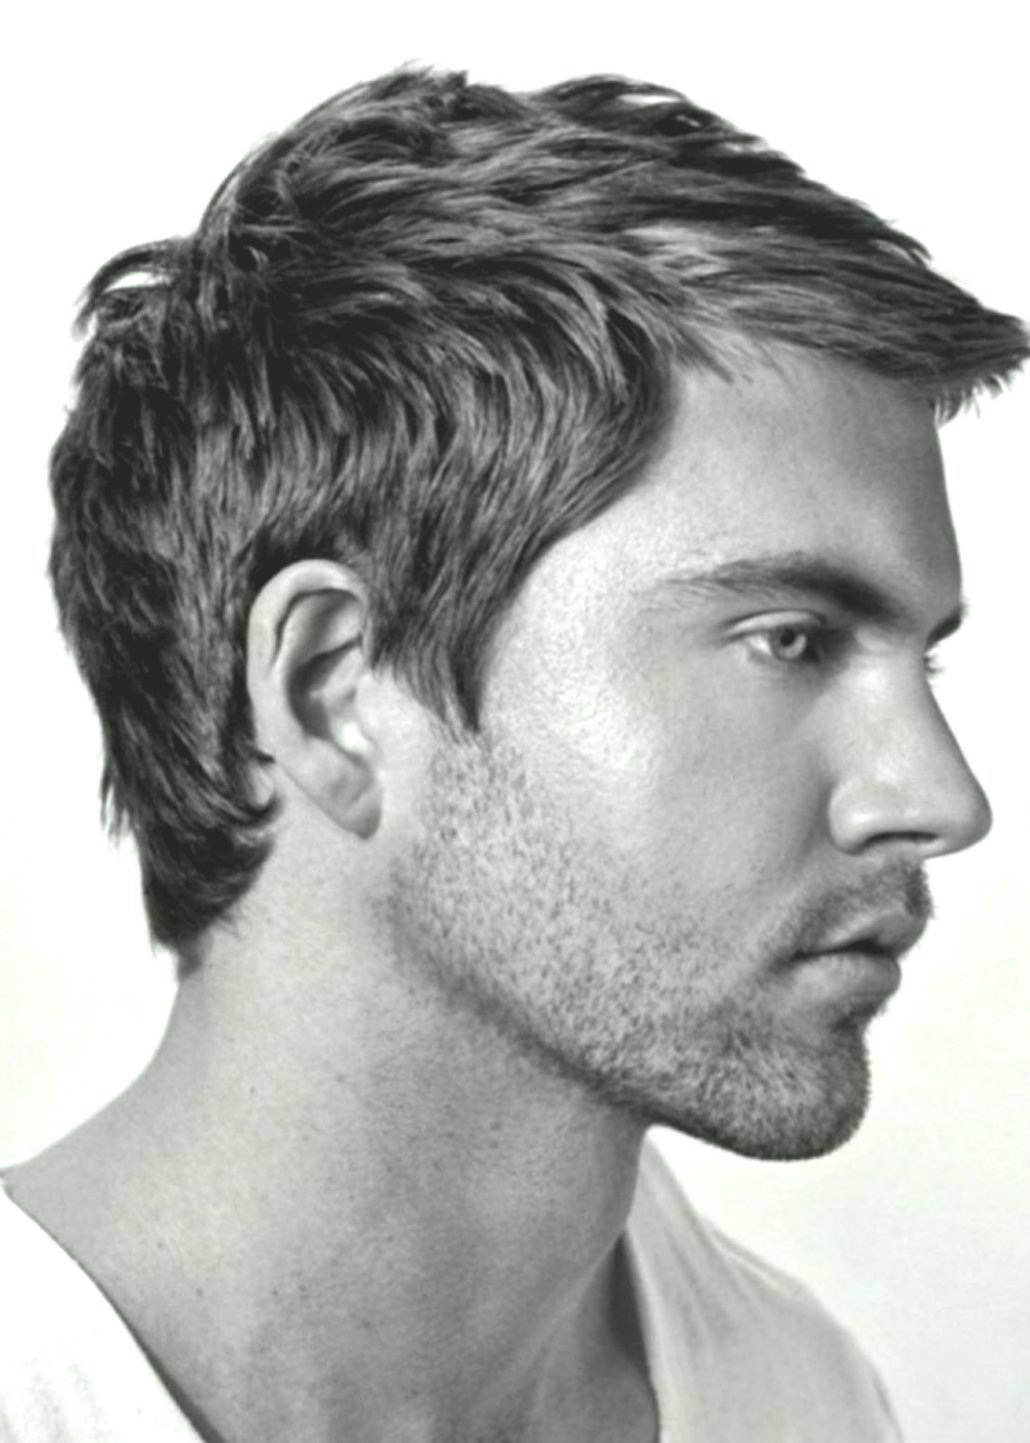 Stylish Hair Styling Men Online New Hair Styling Men Model